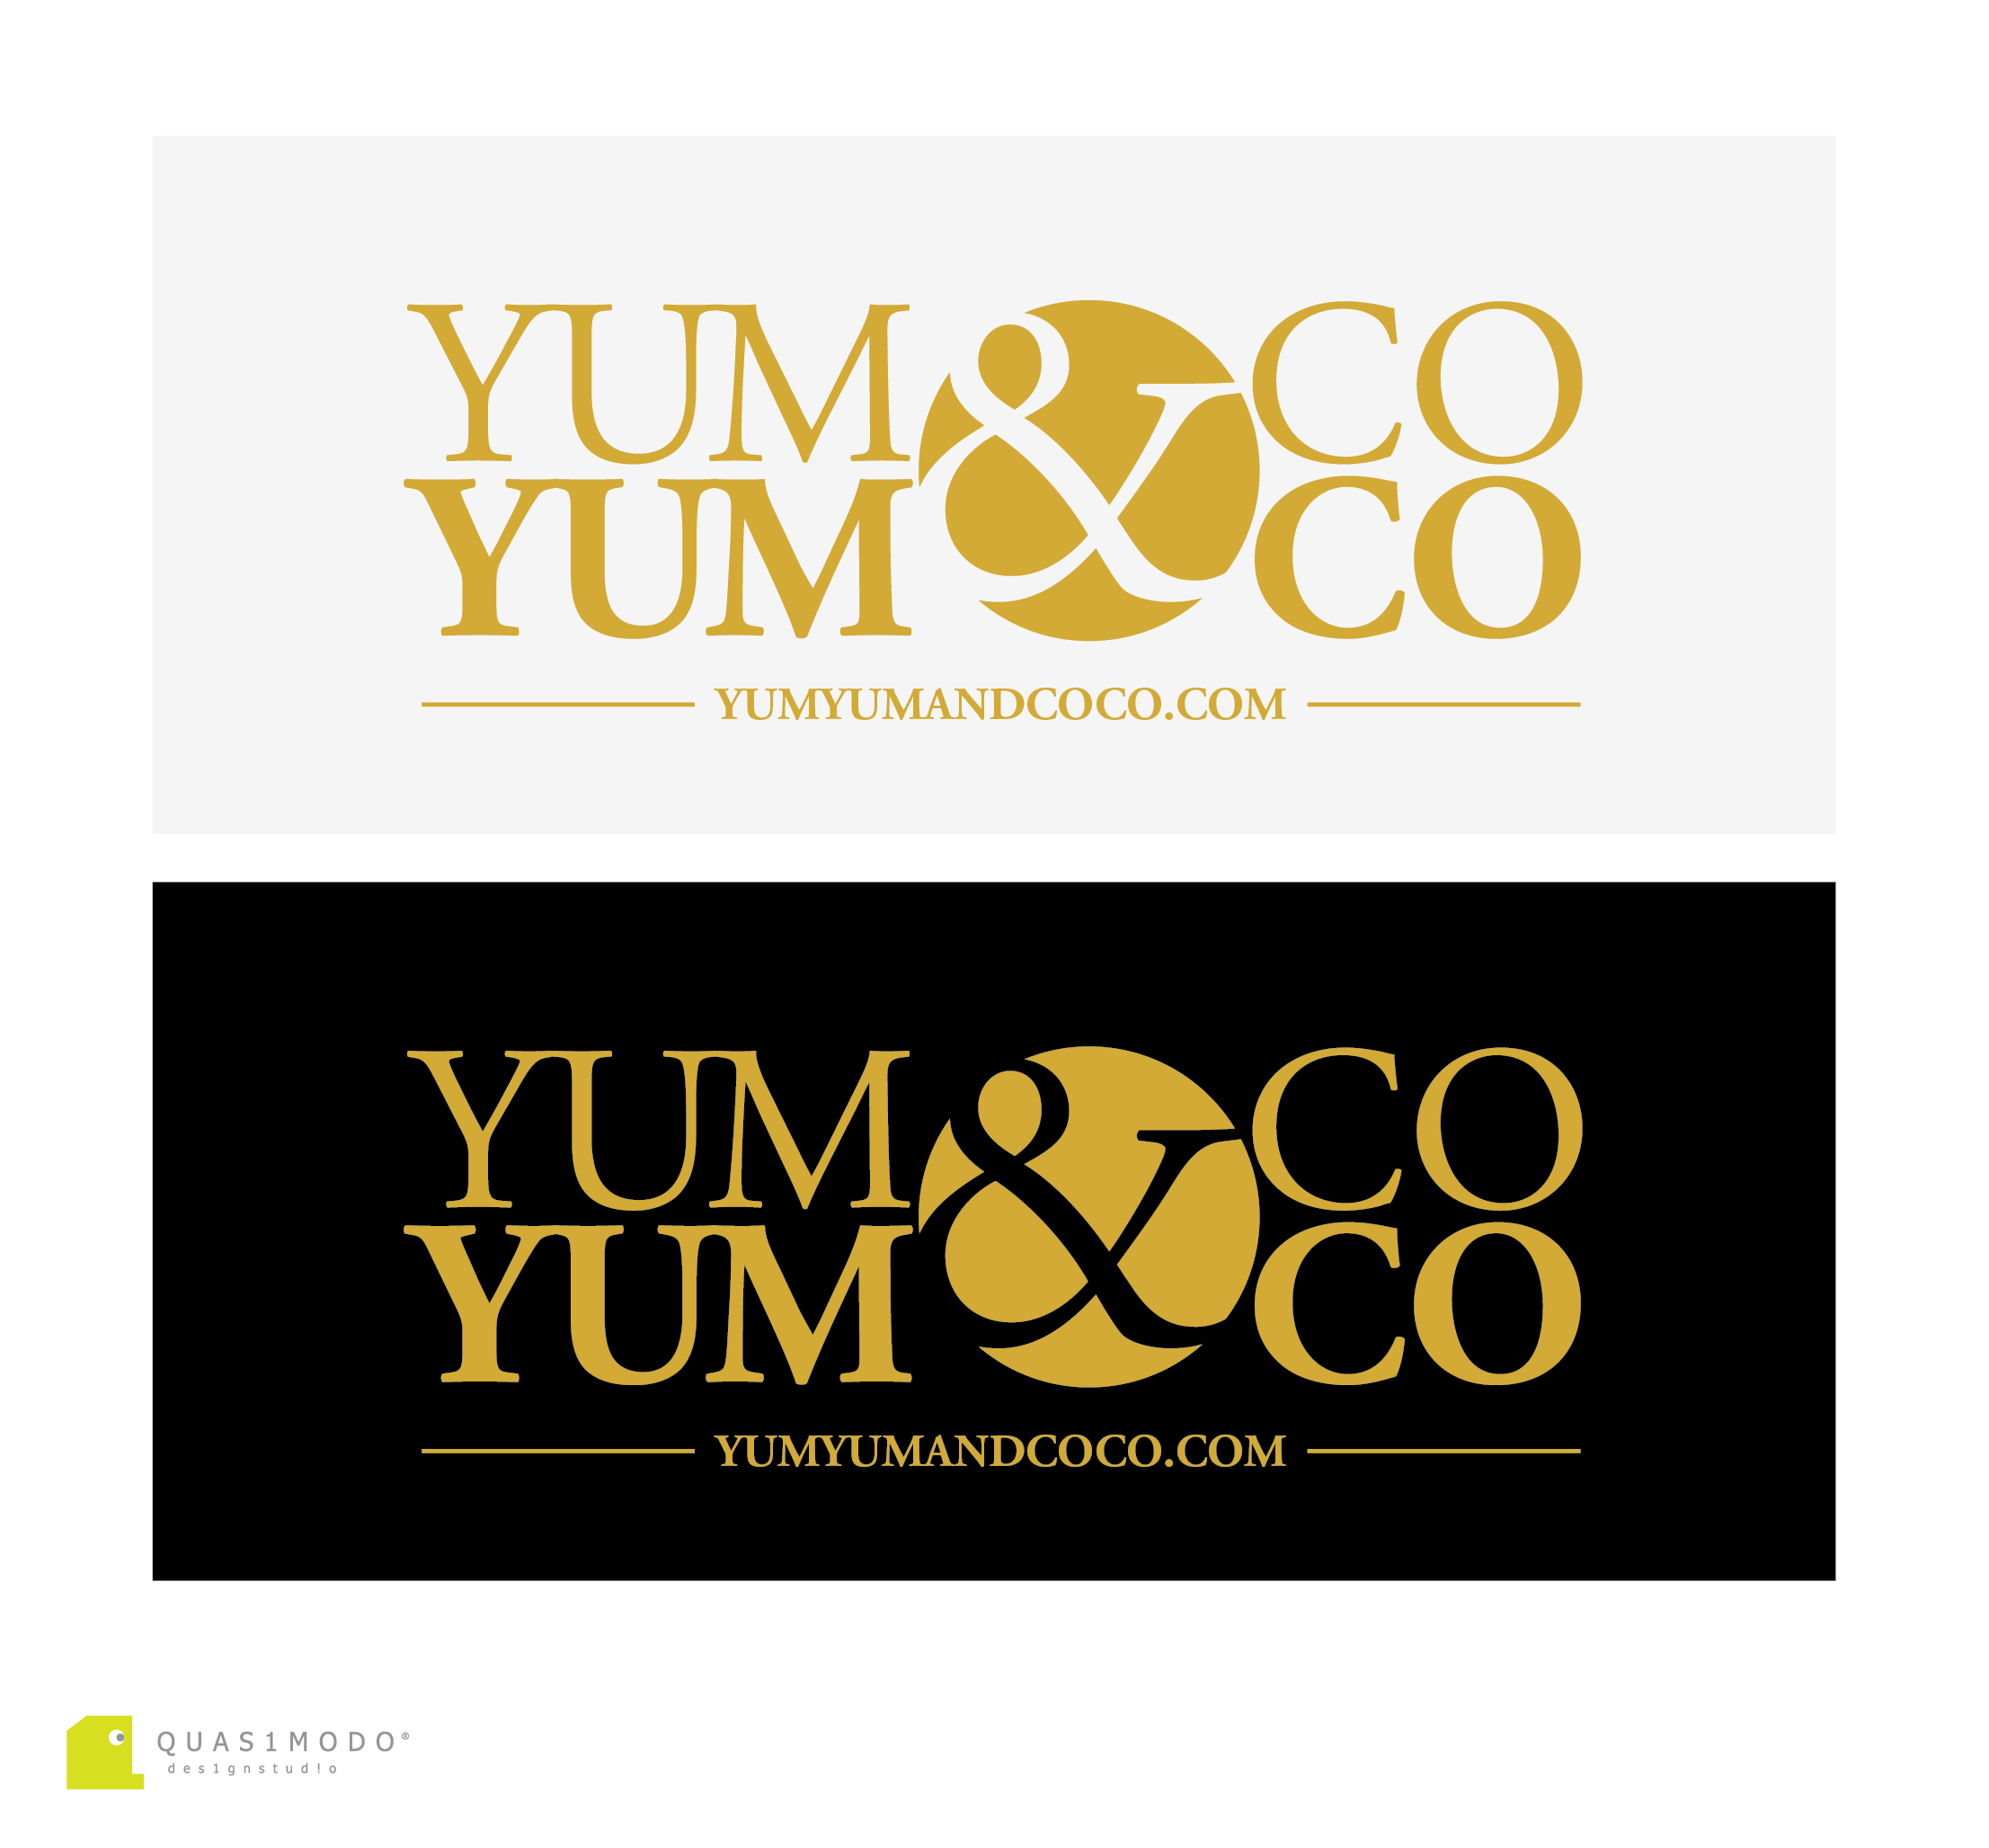 Logo Design by DIMITRIOS PAPADOPOULOS - Entry No. 181 in the Logo Design Contest Logo Design for YumYum & CoCo.